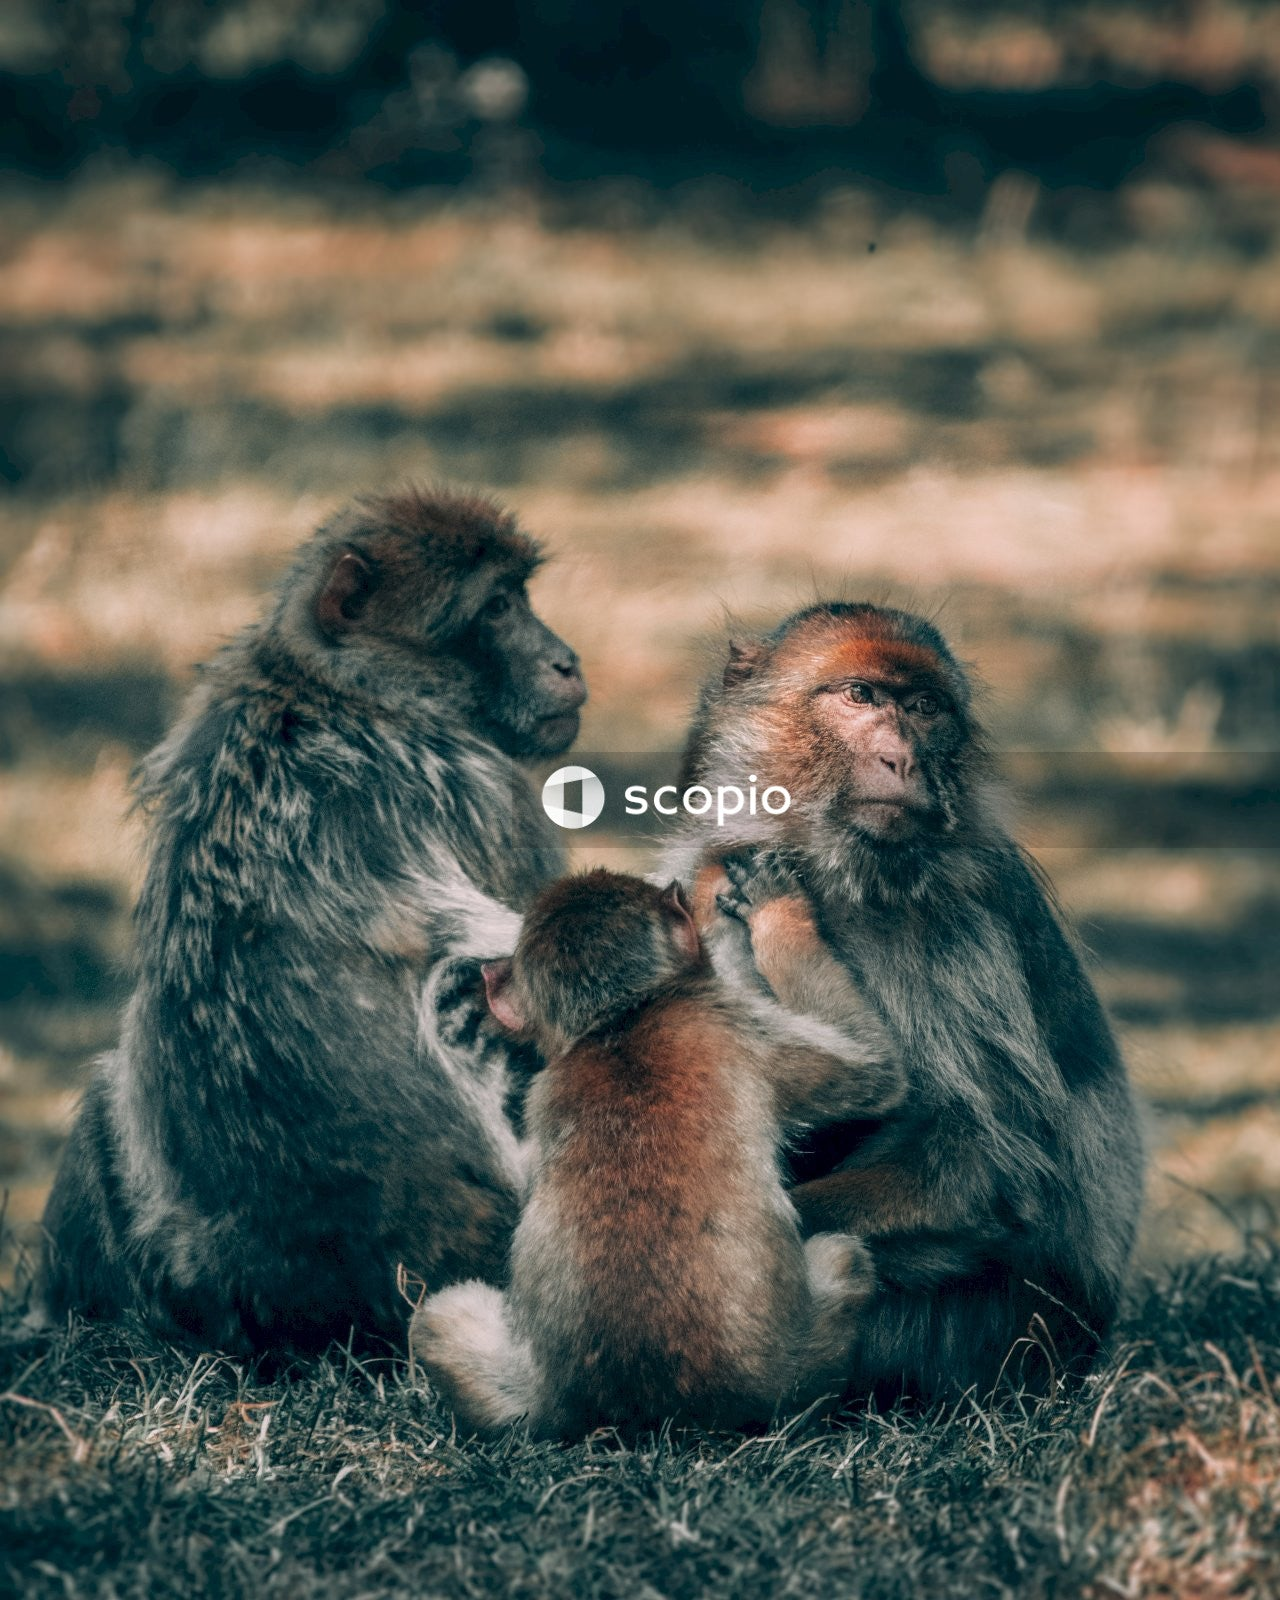 Three macaque sitting on grass